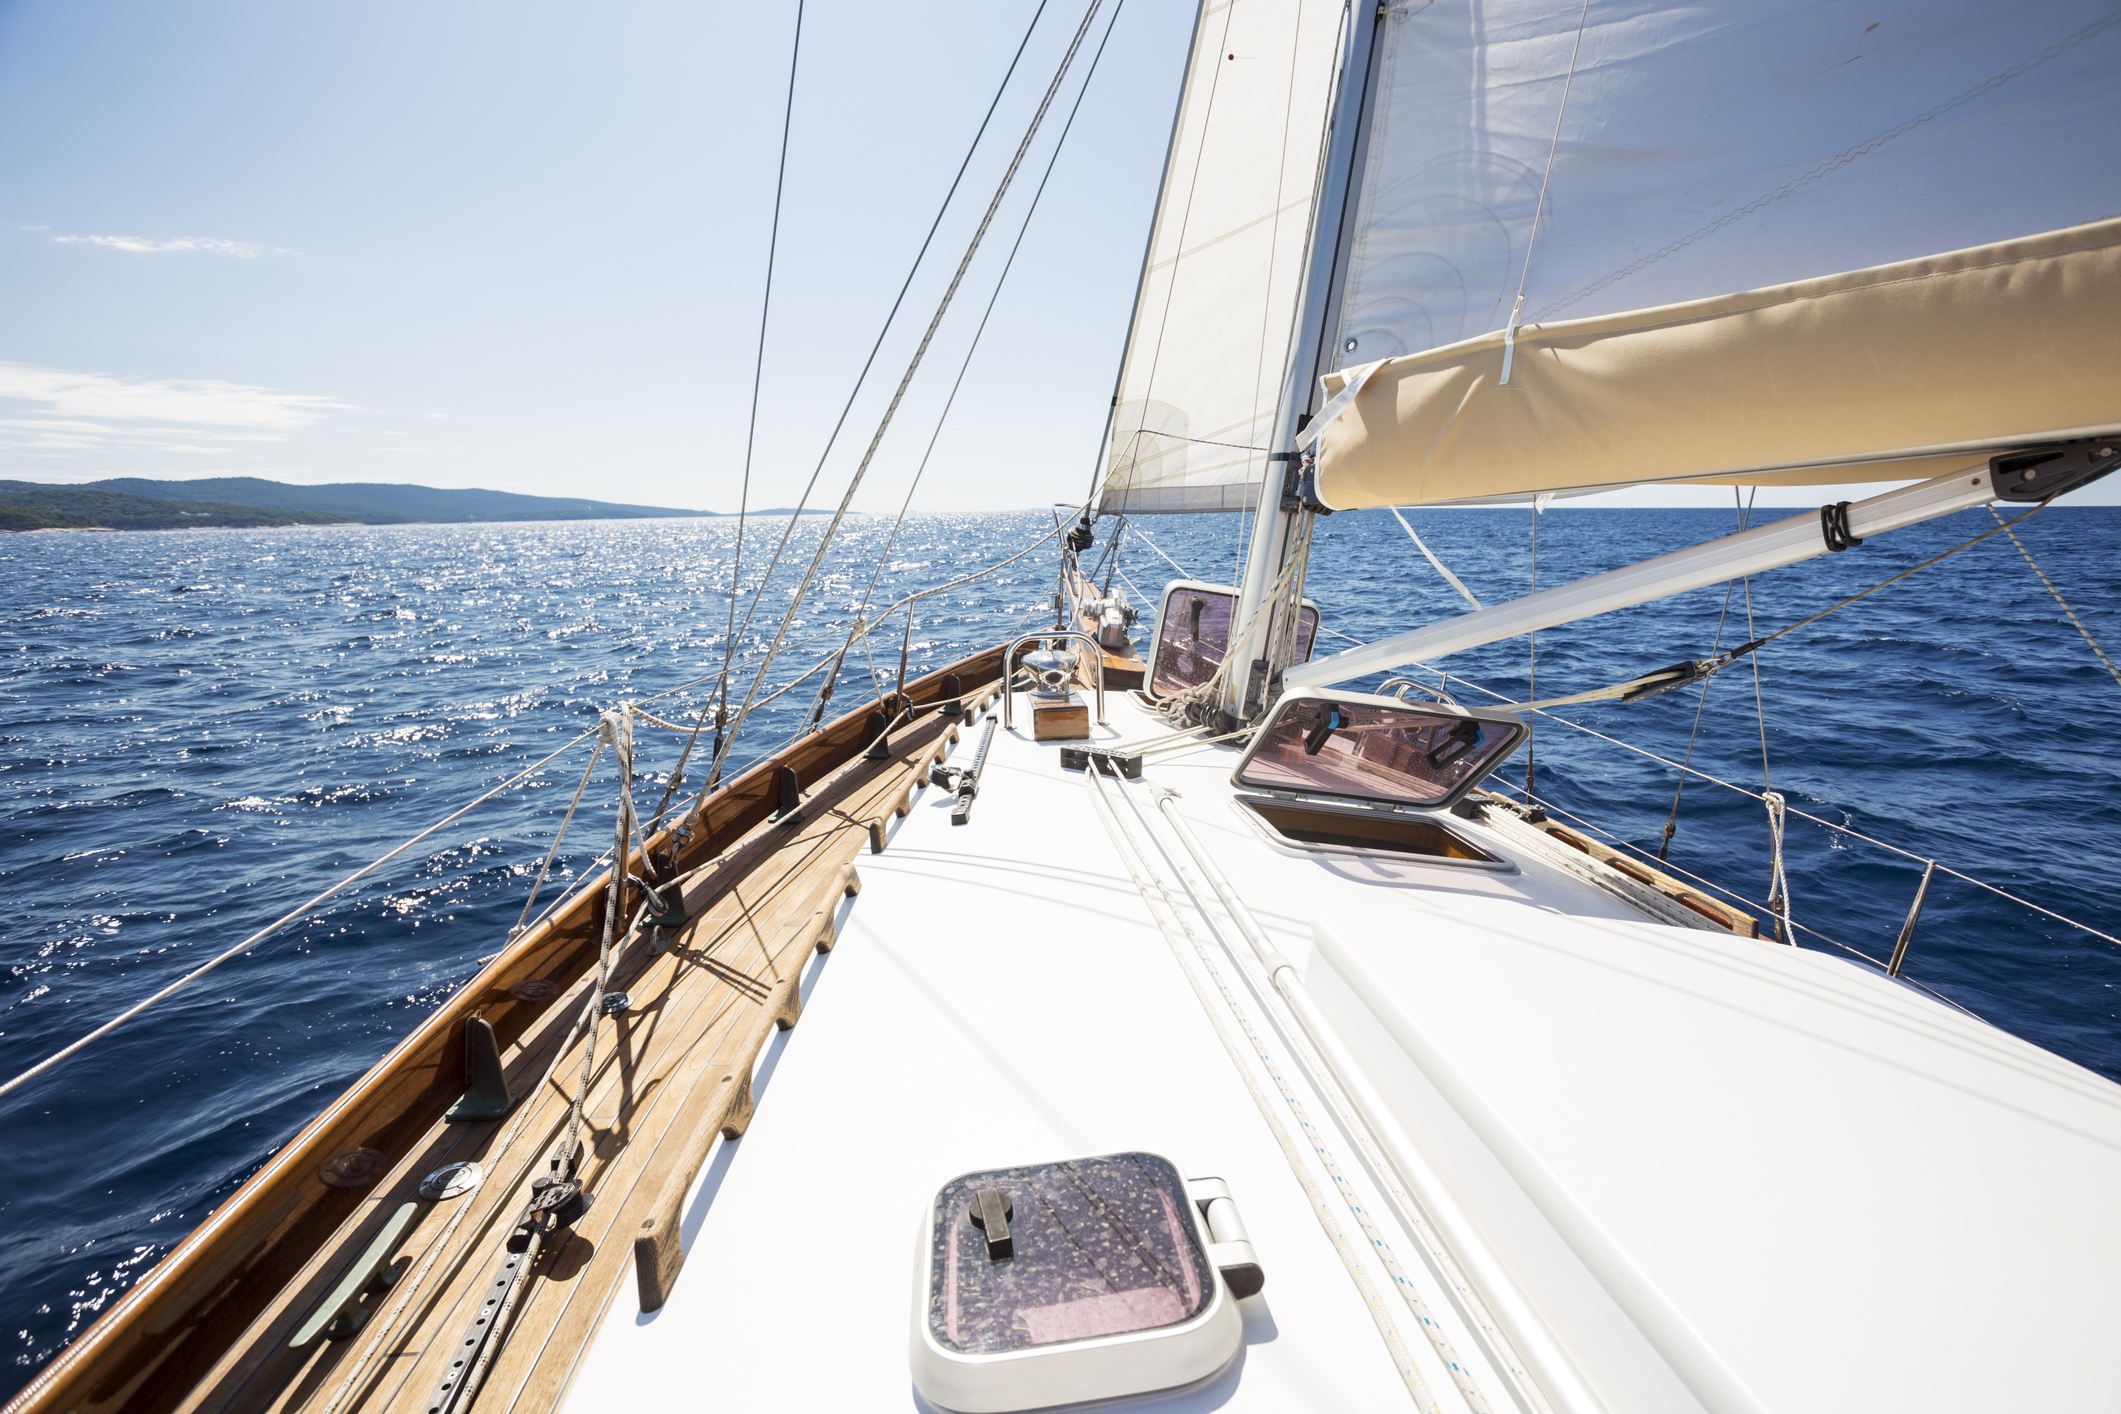 yacht bow in Mediterranean sea in the middle of the sunny summer day